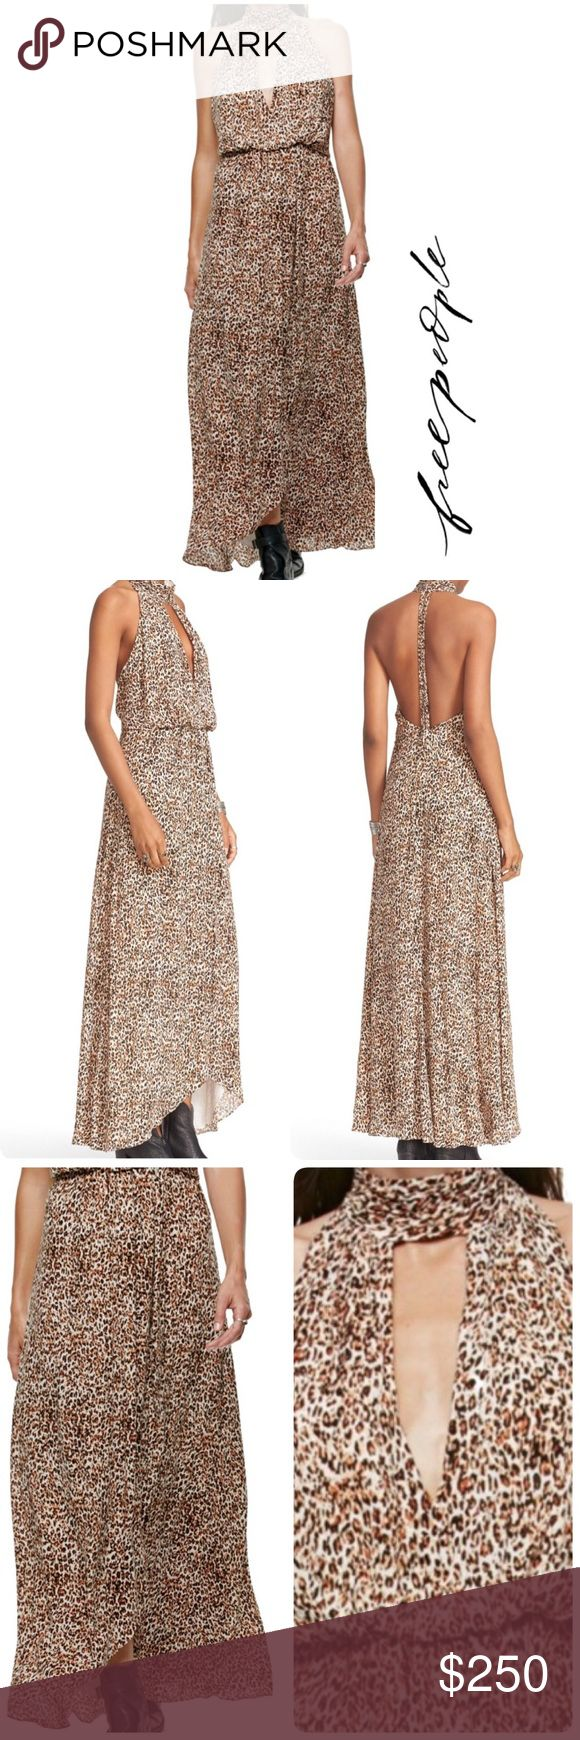 "FREE PEOPLE Halter Neck Animal Instinct Maxi Dress FREE PEOPLE Halter Neck Animal Instinct Maxi Dress  BRAND: Free People SIZE: 4  COLOR: BLK COMBO (Black Combo) MATERIAL:  ••• Shell: 100% rayon ••• Lining: 100% rayon CARE: Dry Clean only CONDITION: NEW with tags STYLE: OB542590 MSRP: $350 DETAILS: Long cheetah print dress. Halter neckline. Band collar. Sleeveless. Hook and bar closure behind the neck. Fully lined. Made in China  APPROXIMATE MEASUREMENTS: Length: 56"" longest length Free…"